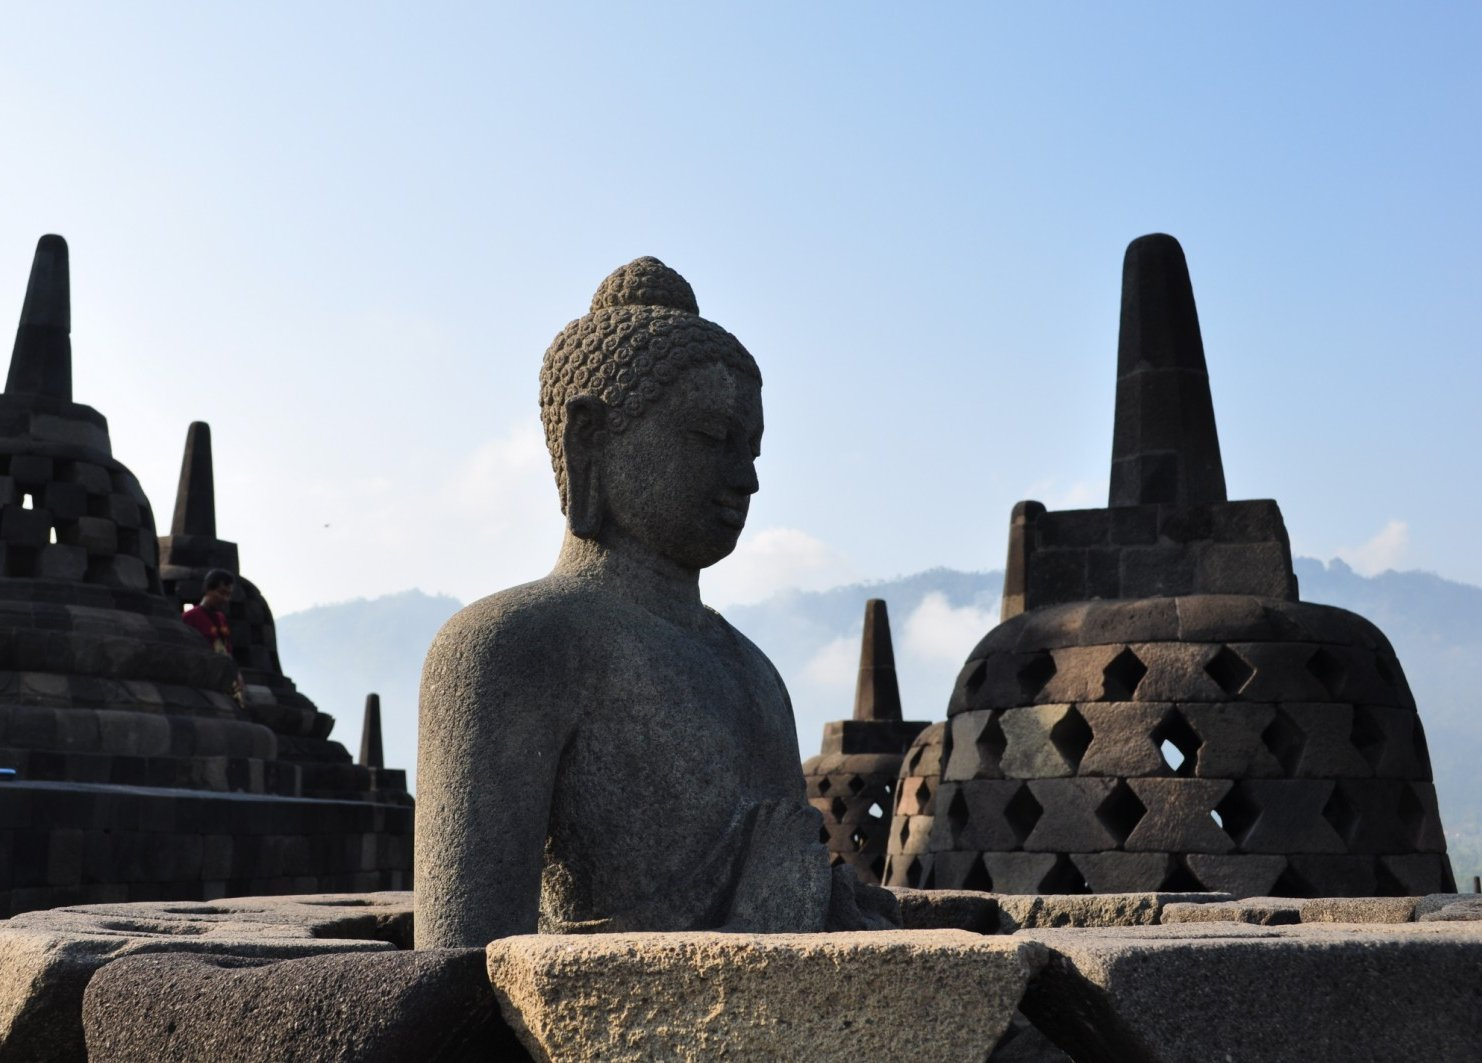 When you finally reach the top of Borobudur Temple, you feel the weight of the Temple lift off to reveal the open skies above.  It's a great sensation that's hard to capture by camera.